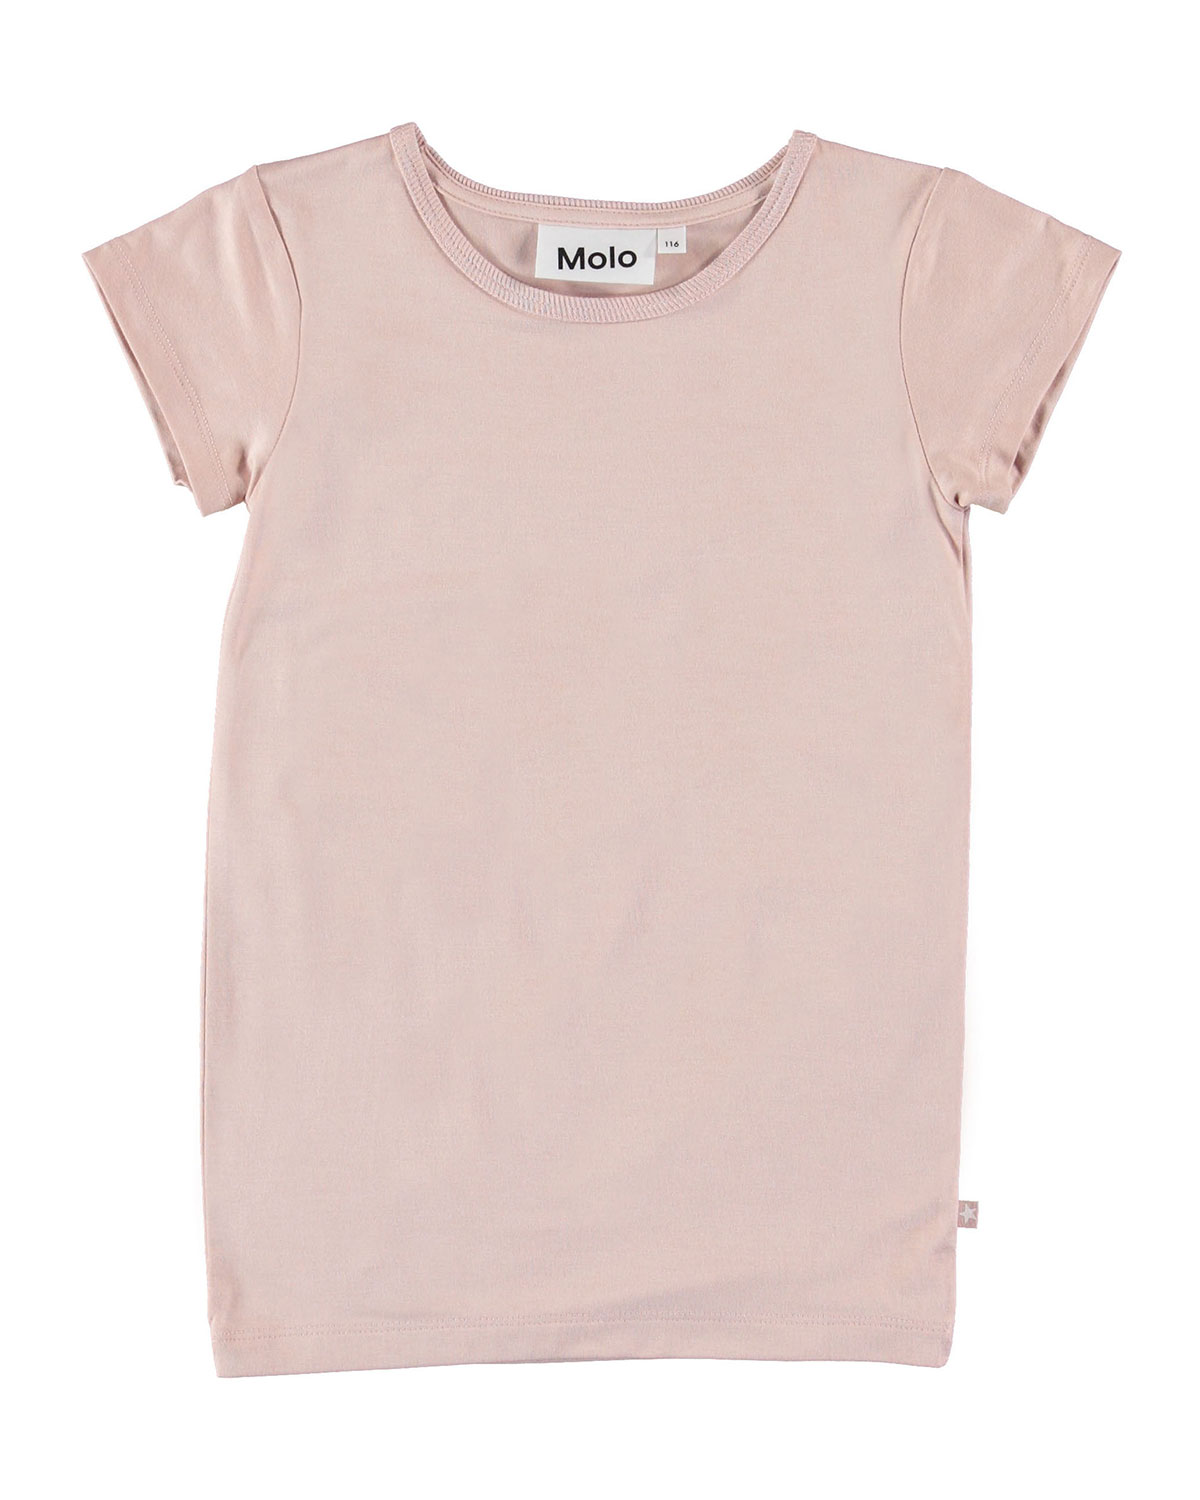 Molo RASMINE BASIC SOFT TOUCH TEE